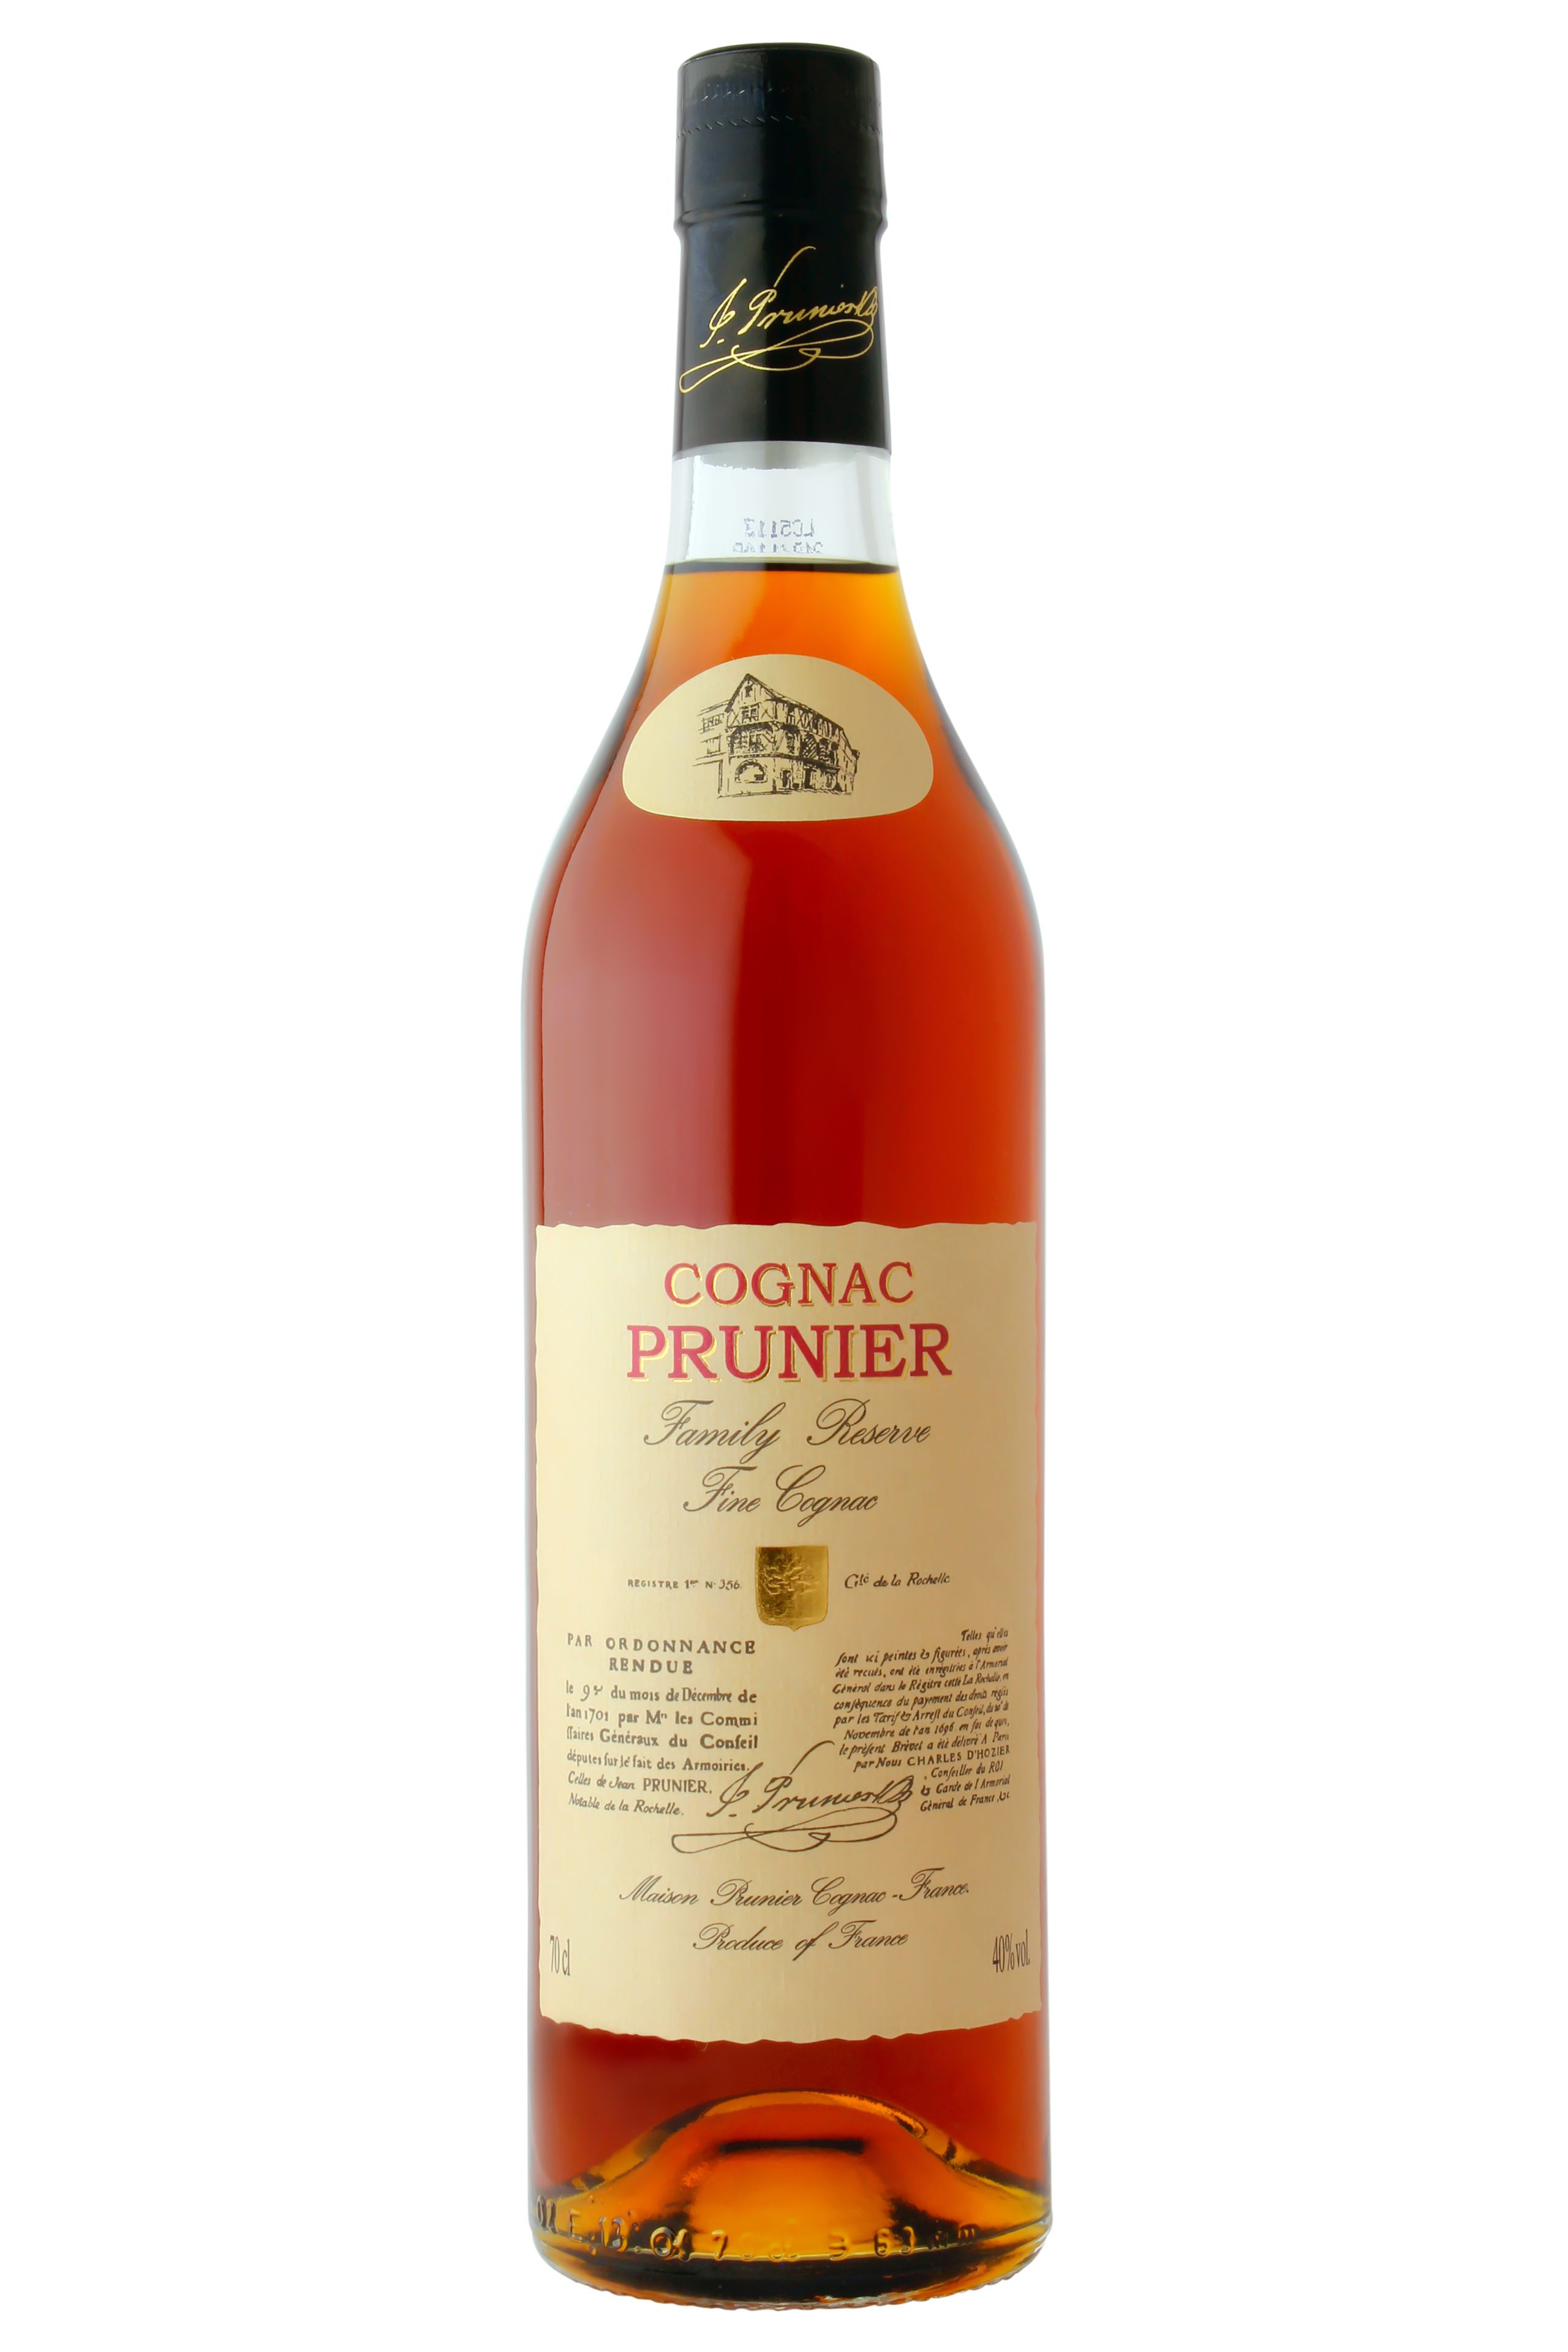 Prunier Reserve De La Famille Family Reserve Cognac Buy Online And Find Prices On Cognac Expert Com In 2020 Bottle Wine